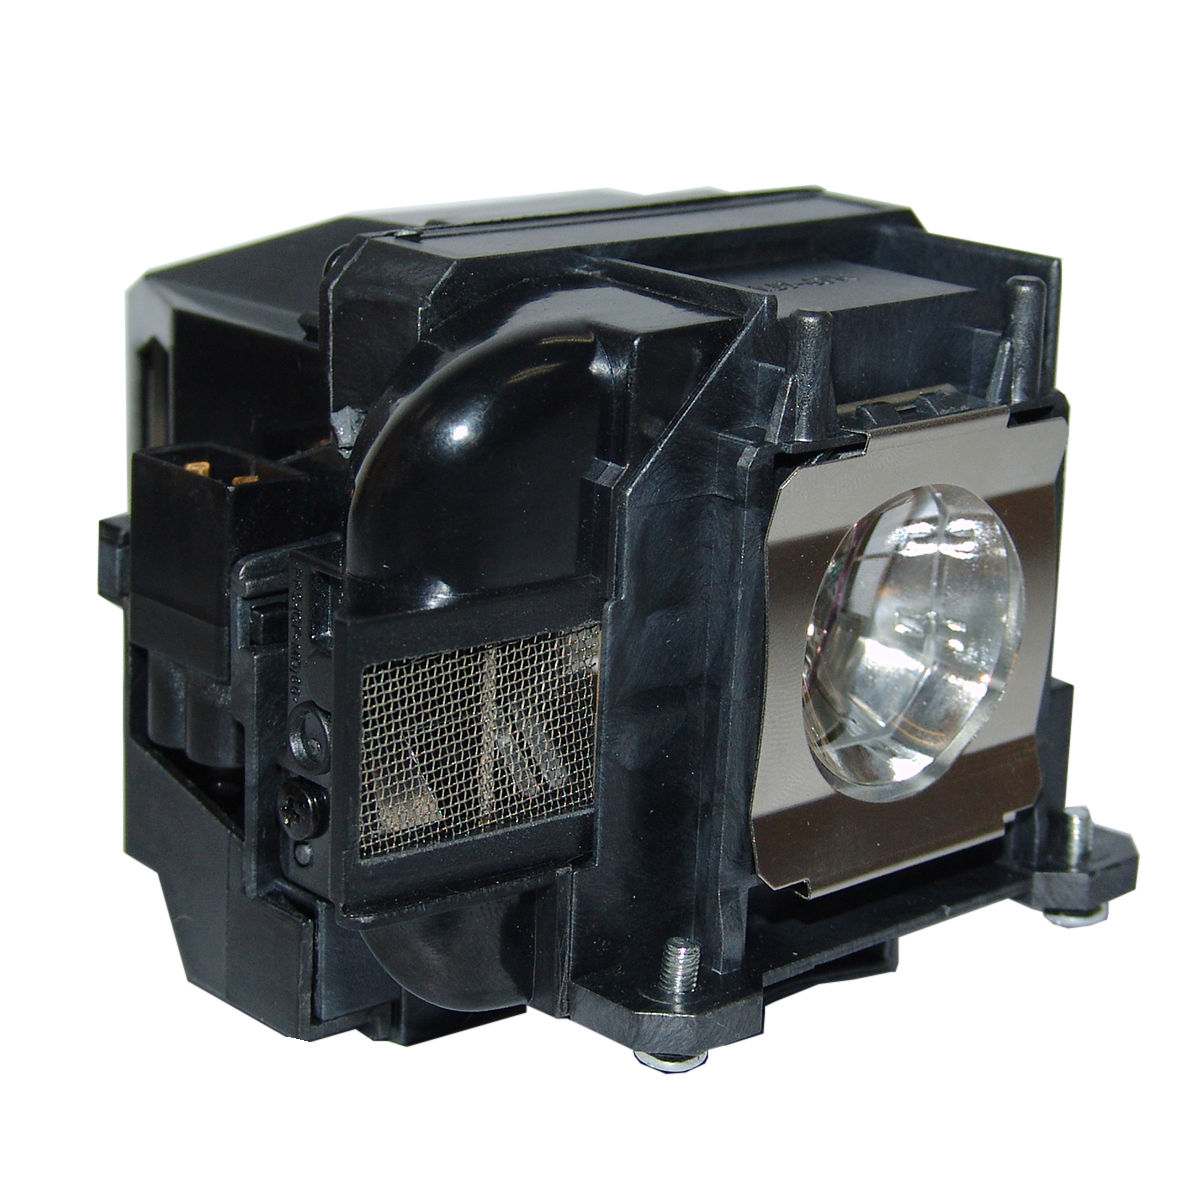 Projector Lamp Bulb ELPLP88 V13H010L88 for Epson EB-S31 PowerLite S27 X27 W29 97H 98H 99WH 955WH 965H VS345 VS240 With Housing напольная акустика pmc twenty5 24 walnut page 7